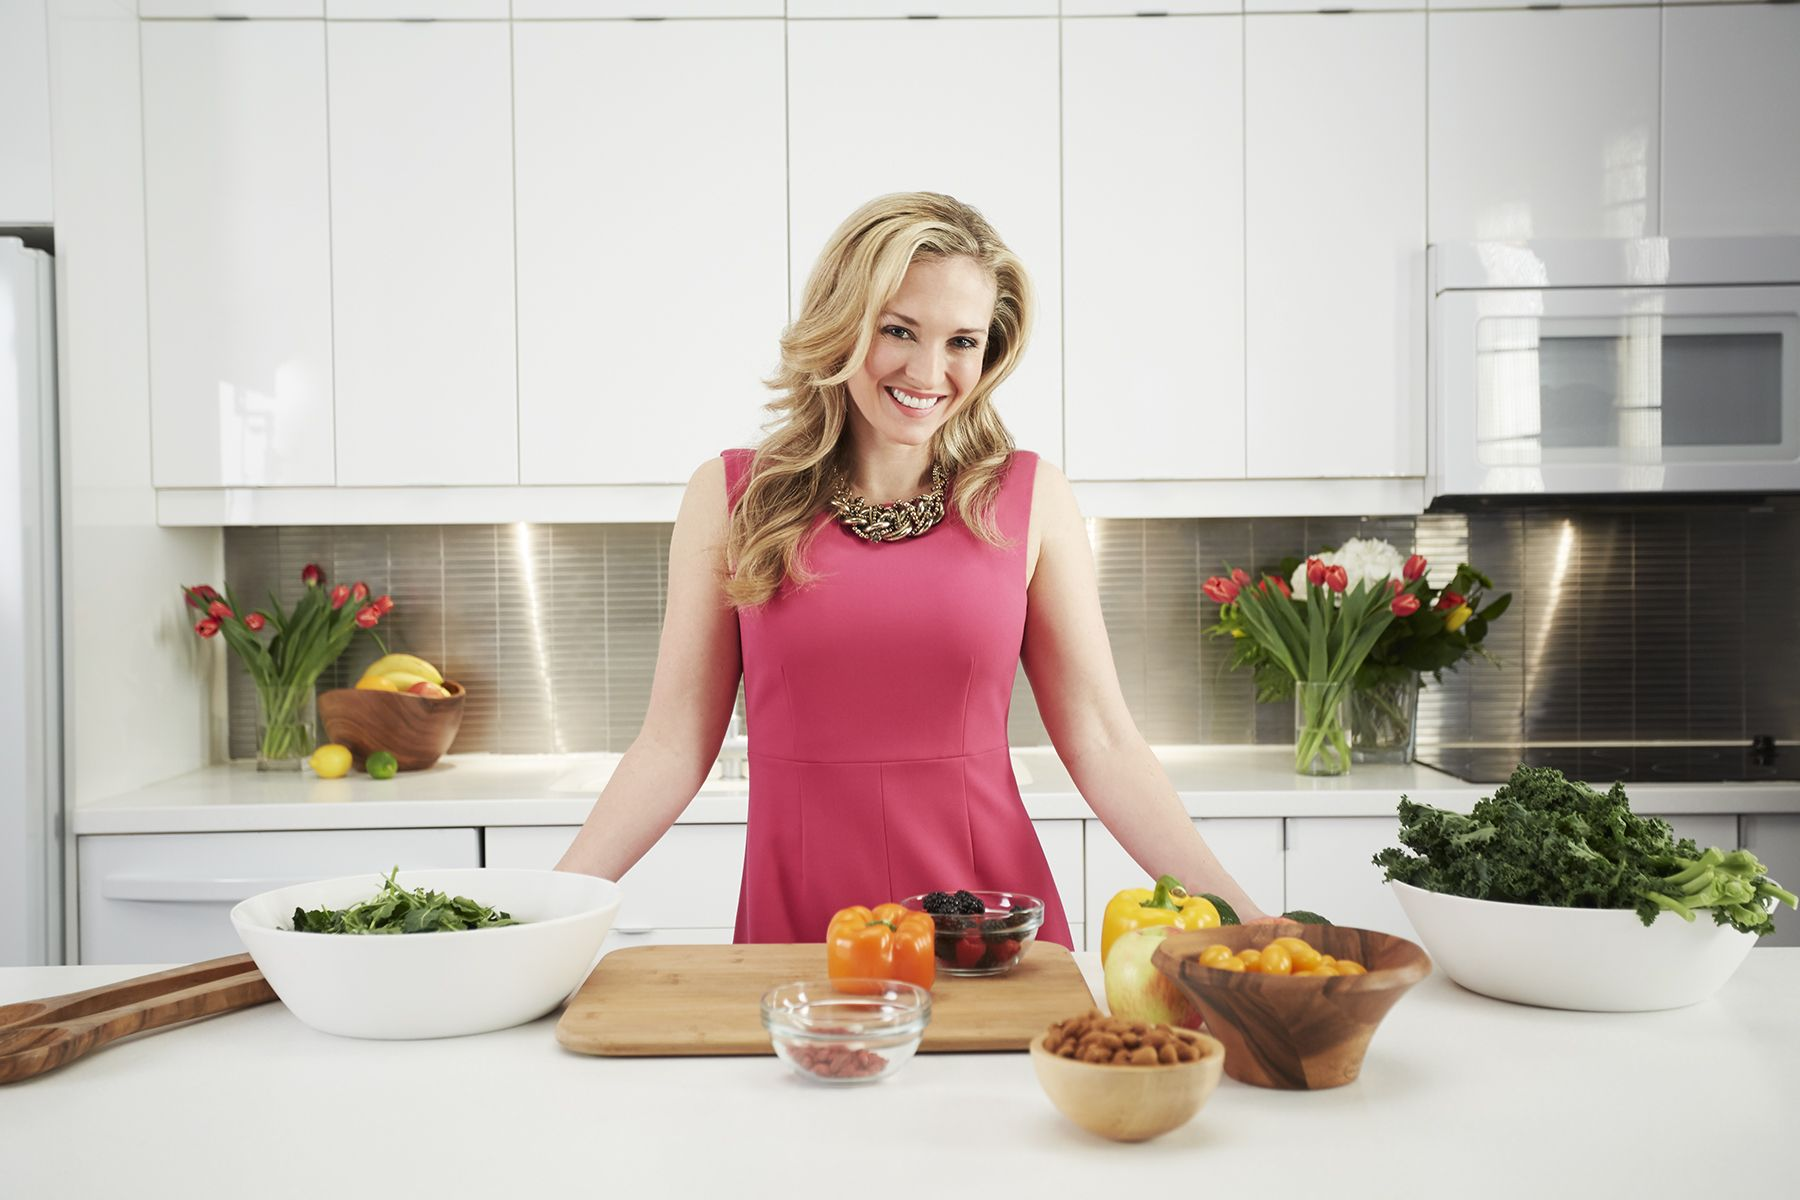 Award-winning Nutritionist and Author Ciara Foy